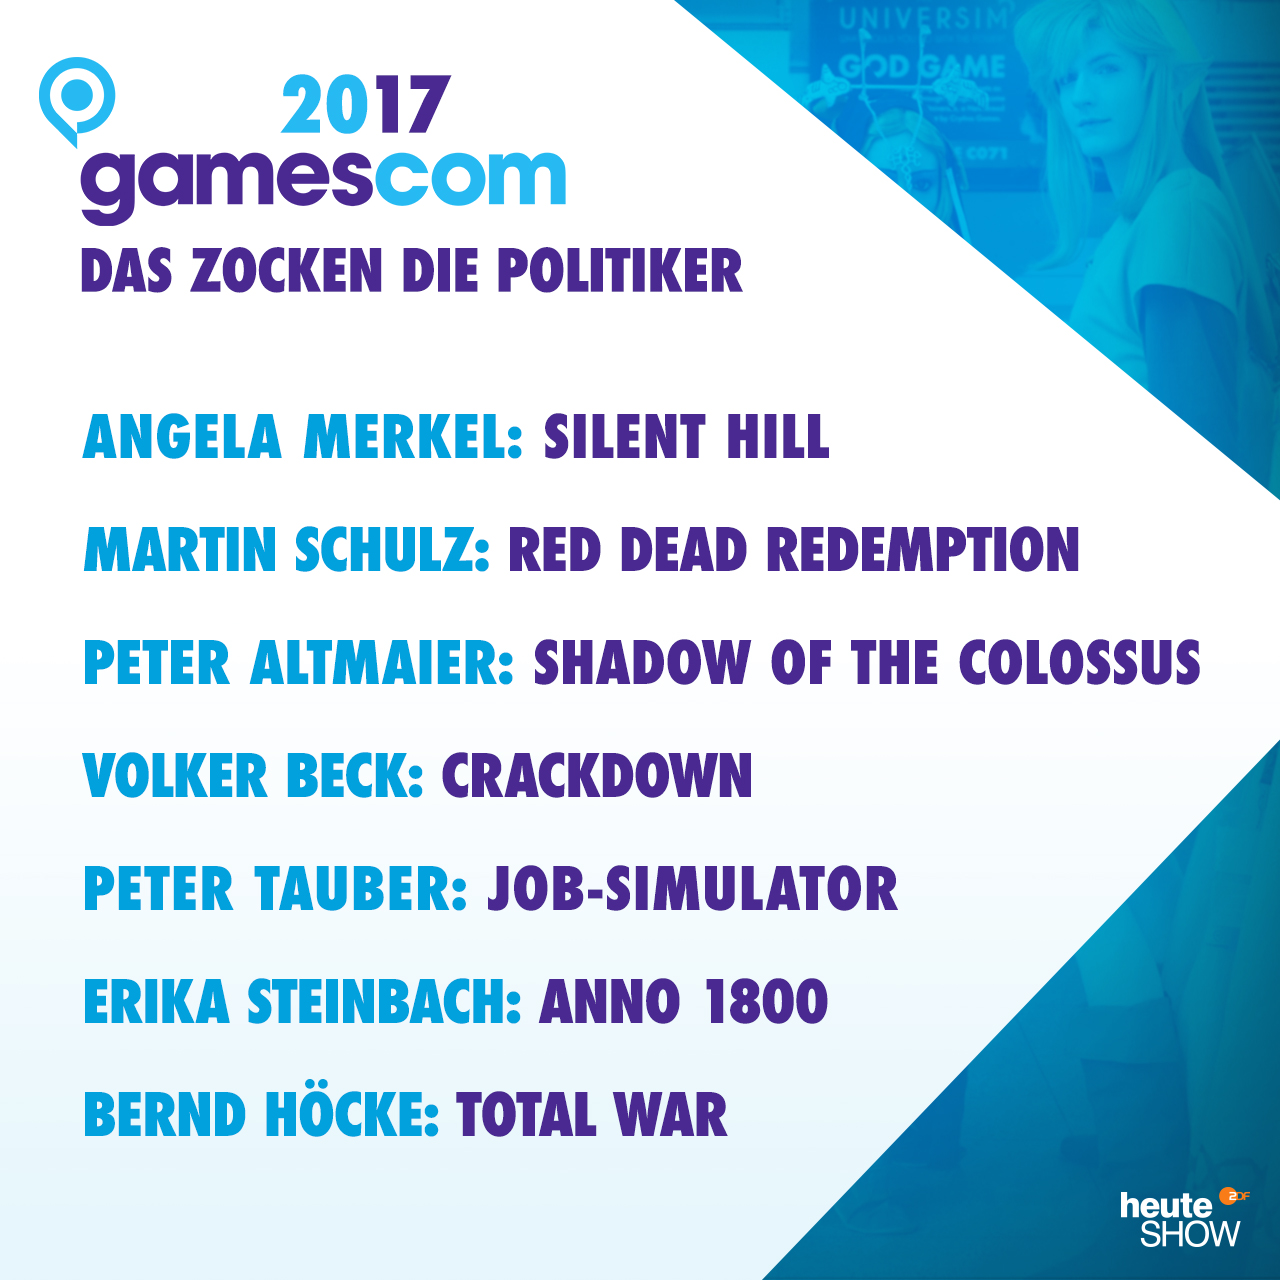 2017 gamescom - Das zocken die Politiker, Angela Merkel: Silent Hill, Martin Schulz: Red Dead Redemption, Peter Altmaier: Shadow of the Colossus, Volker Beck: Crackdown, Peter Tauber: Job Simulator, Erika Steinbach: Anno 1800, Bernd Höcke: Total War